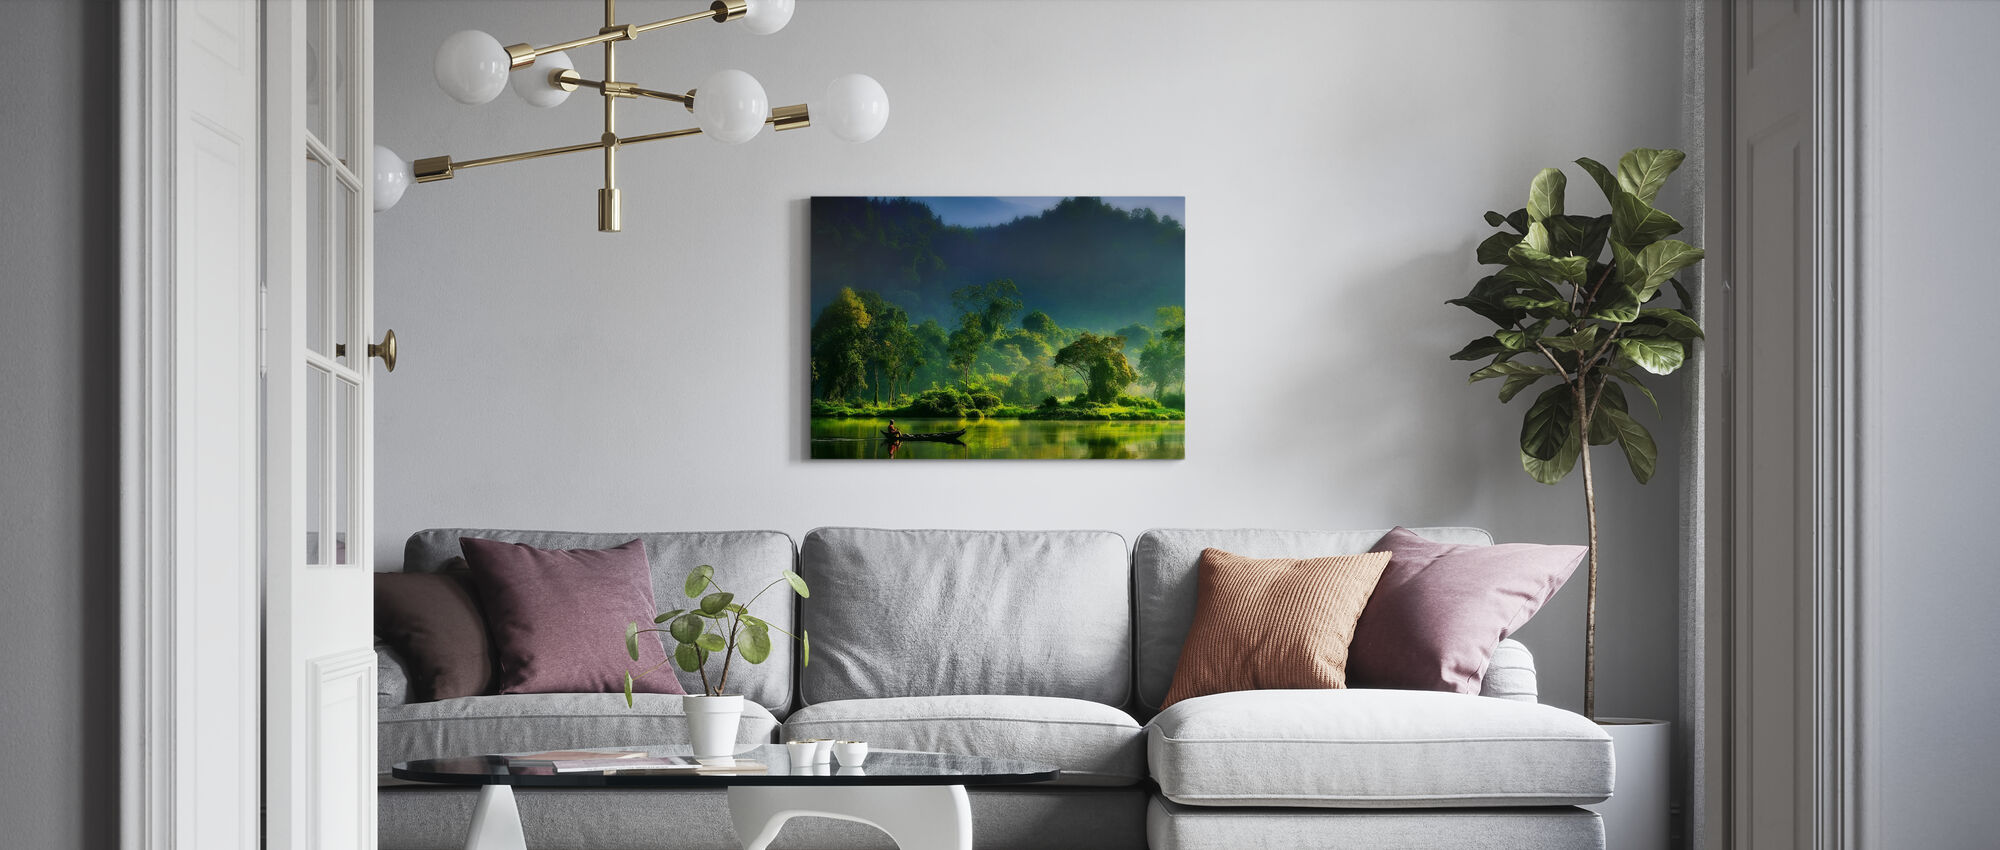 Painting of Nature - Canvas print - Living Room